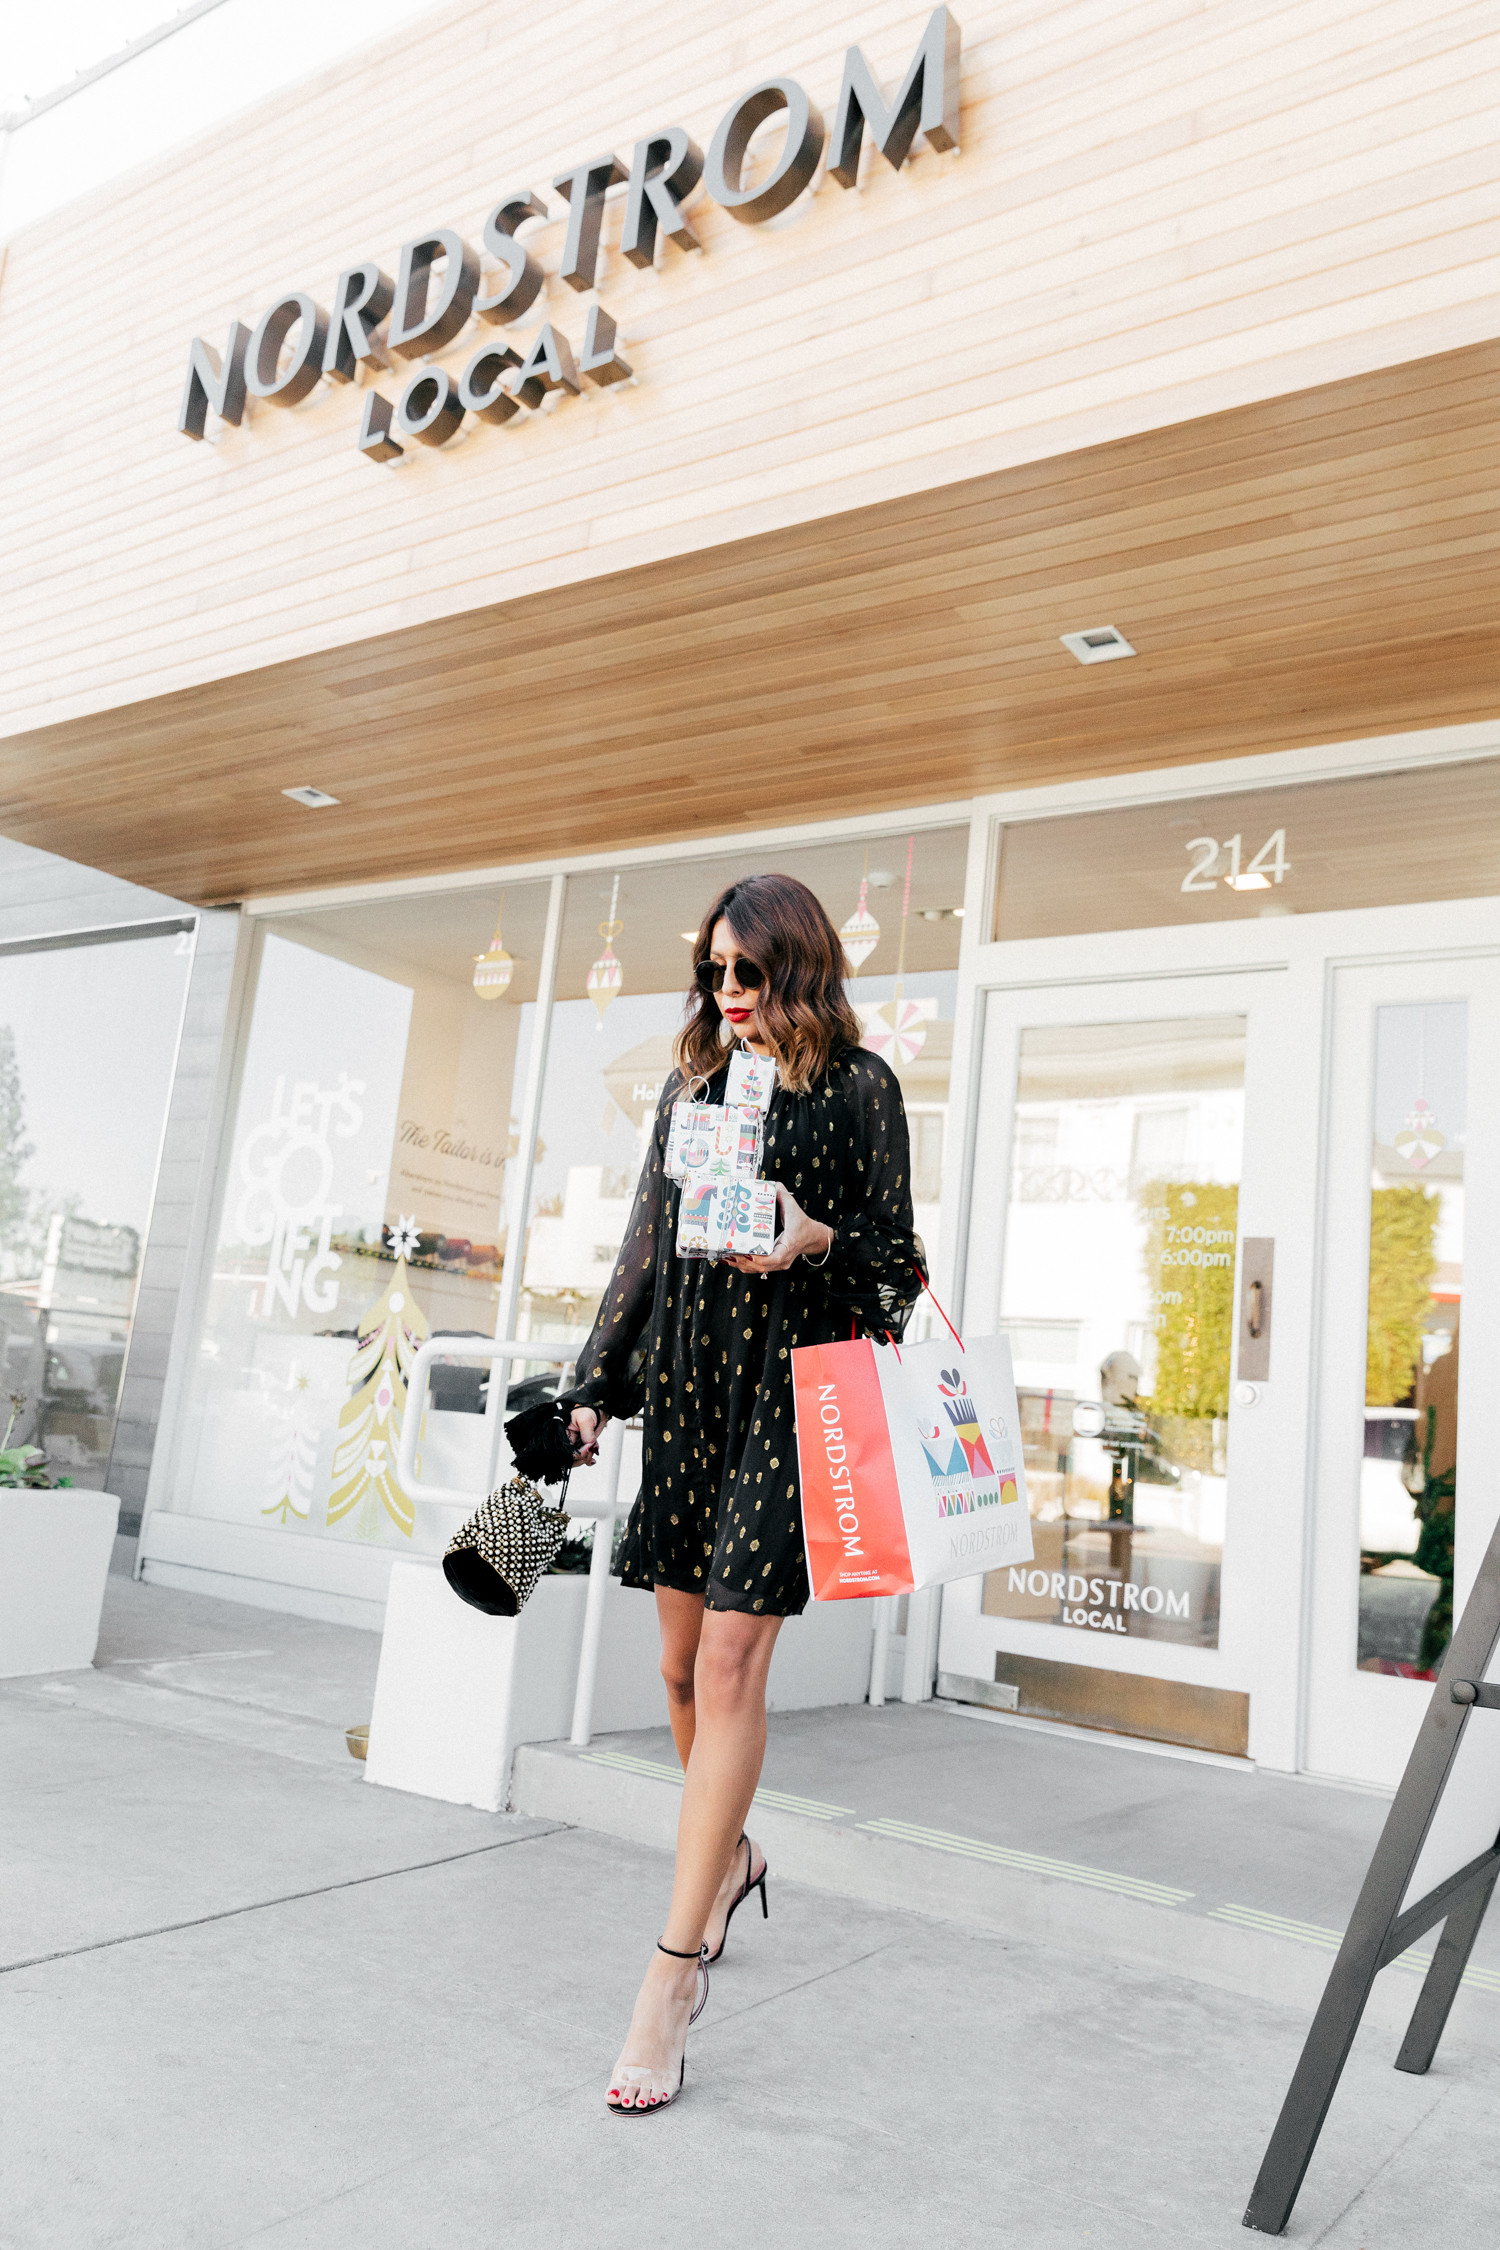 Nordstrom Local - Brentwood